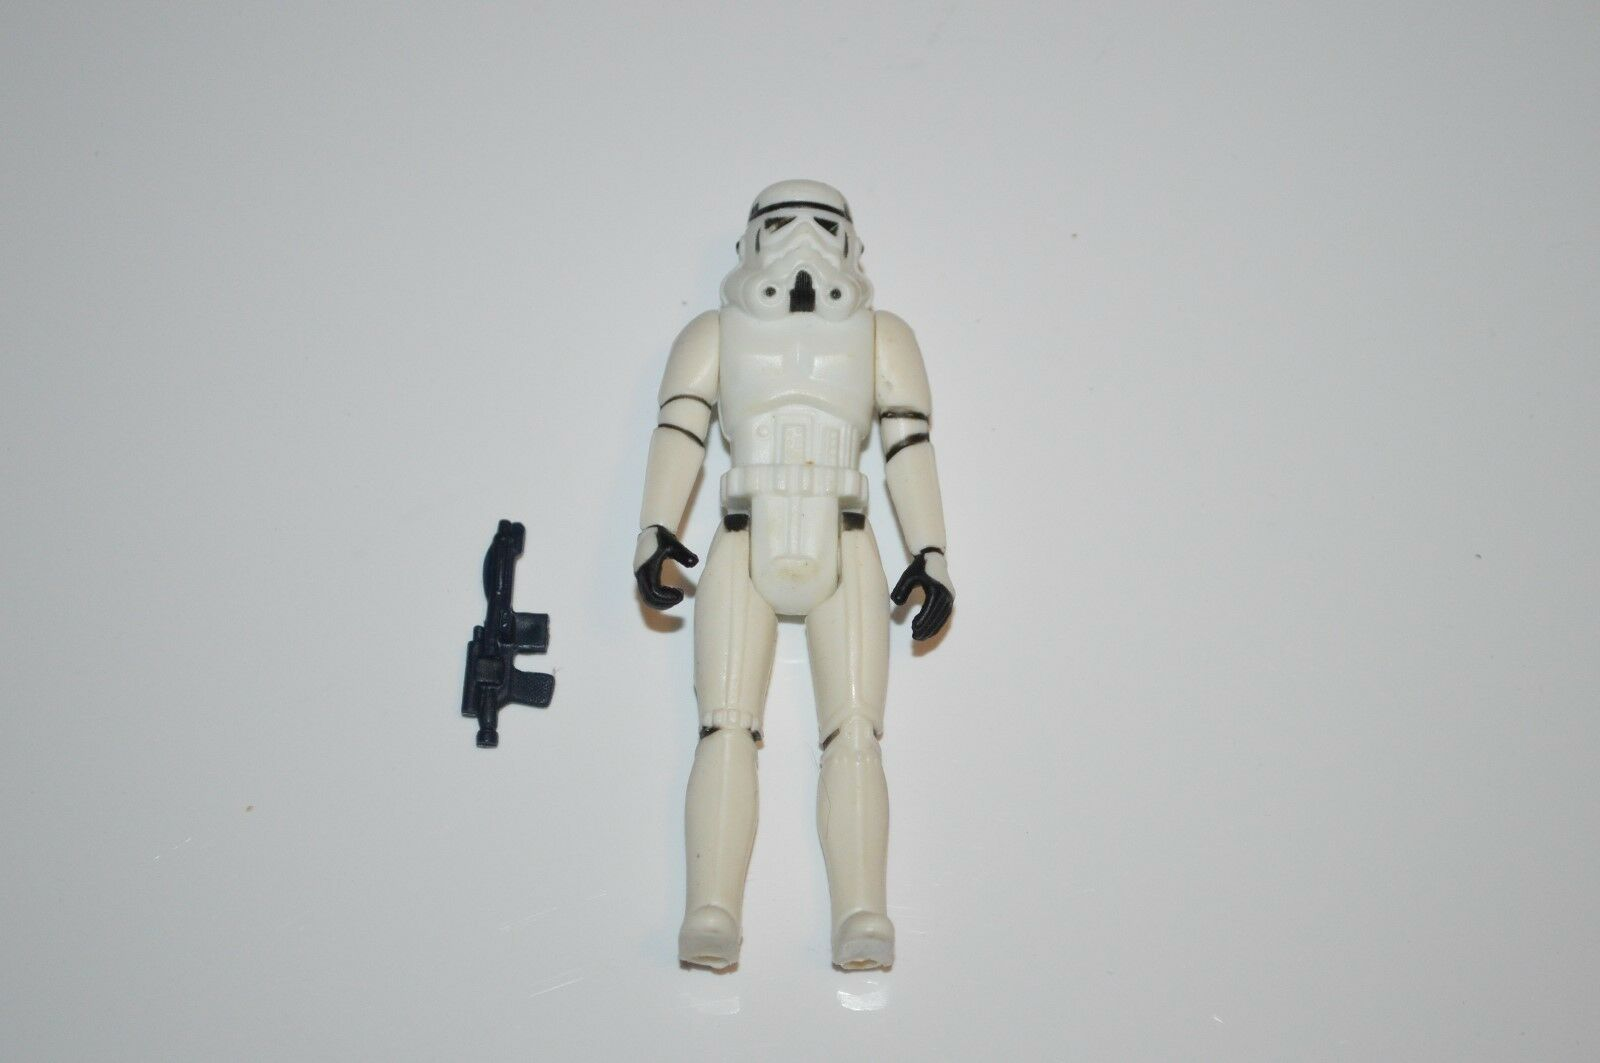 Vintage Star Wars Stormtrooper Action Figure 1977 Hong Kong Kenner